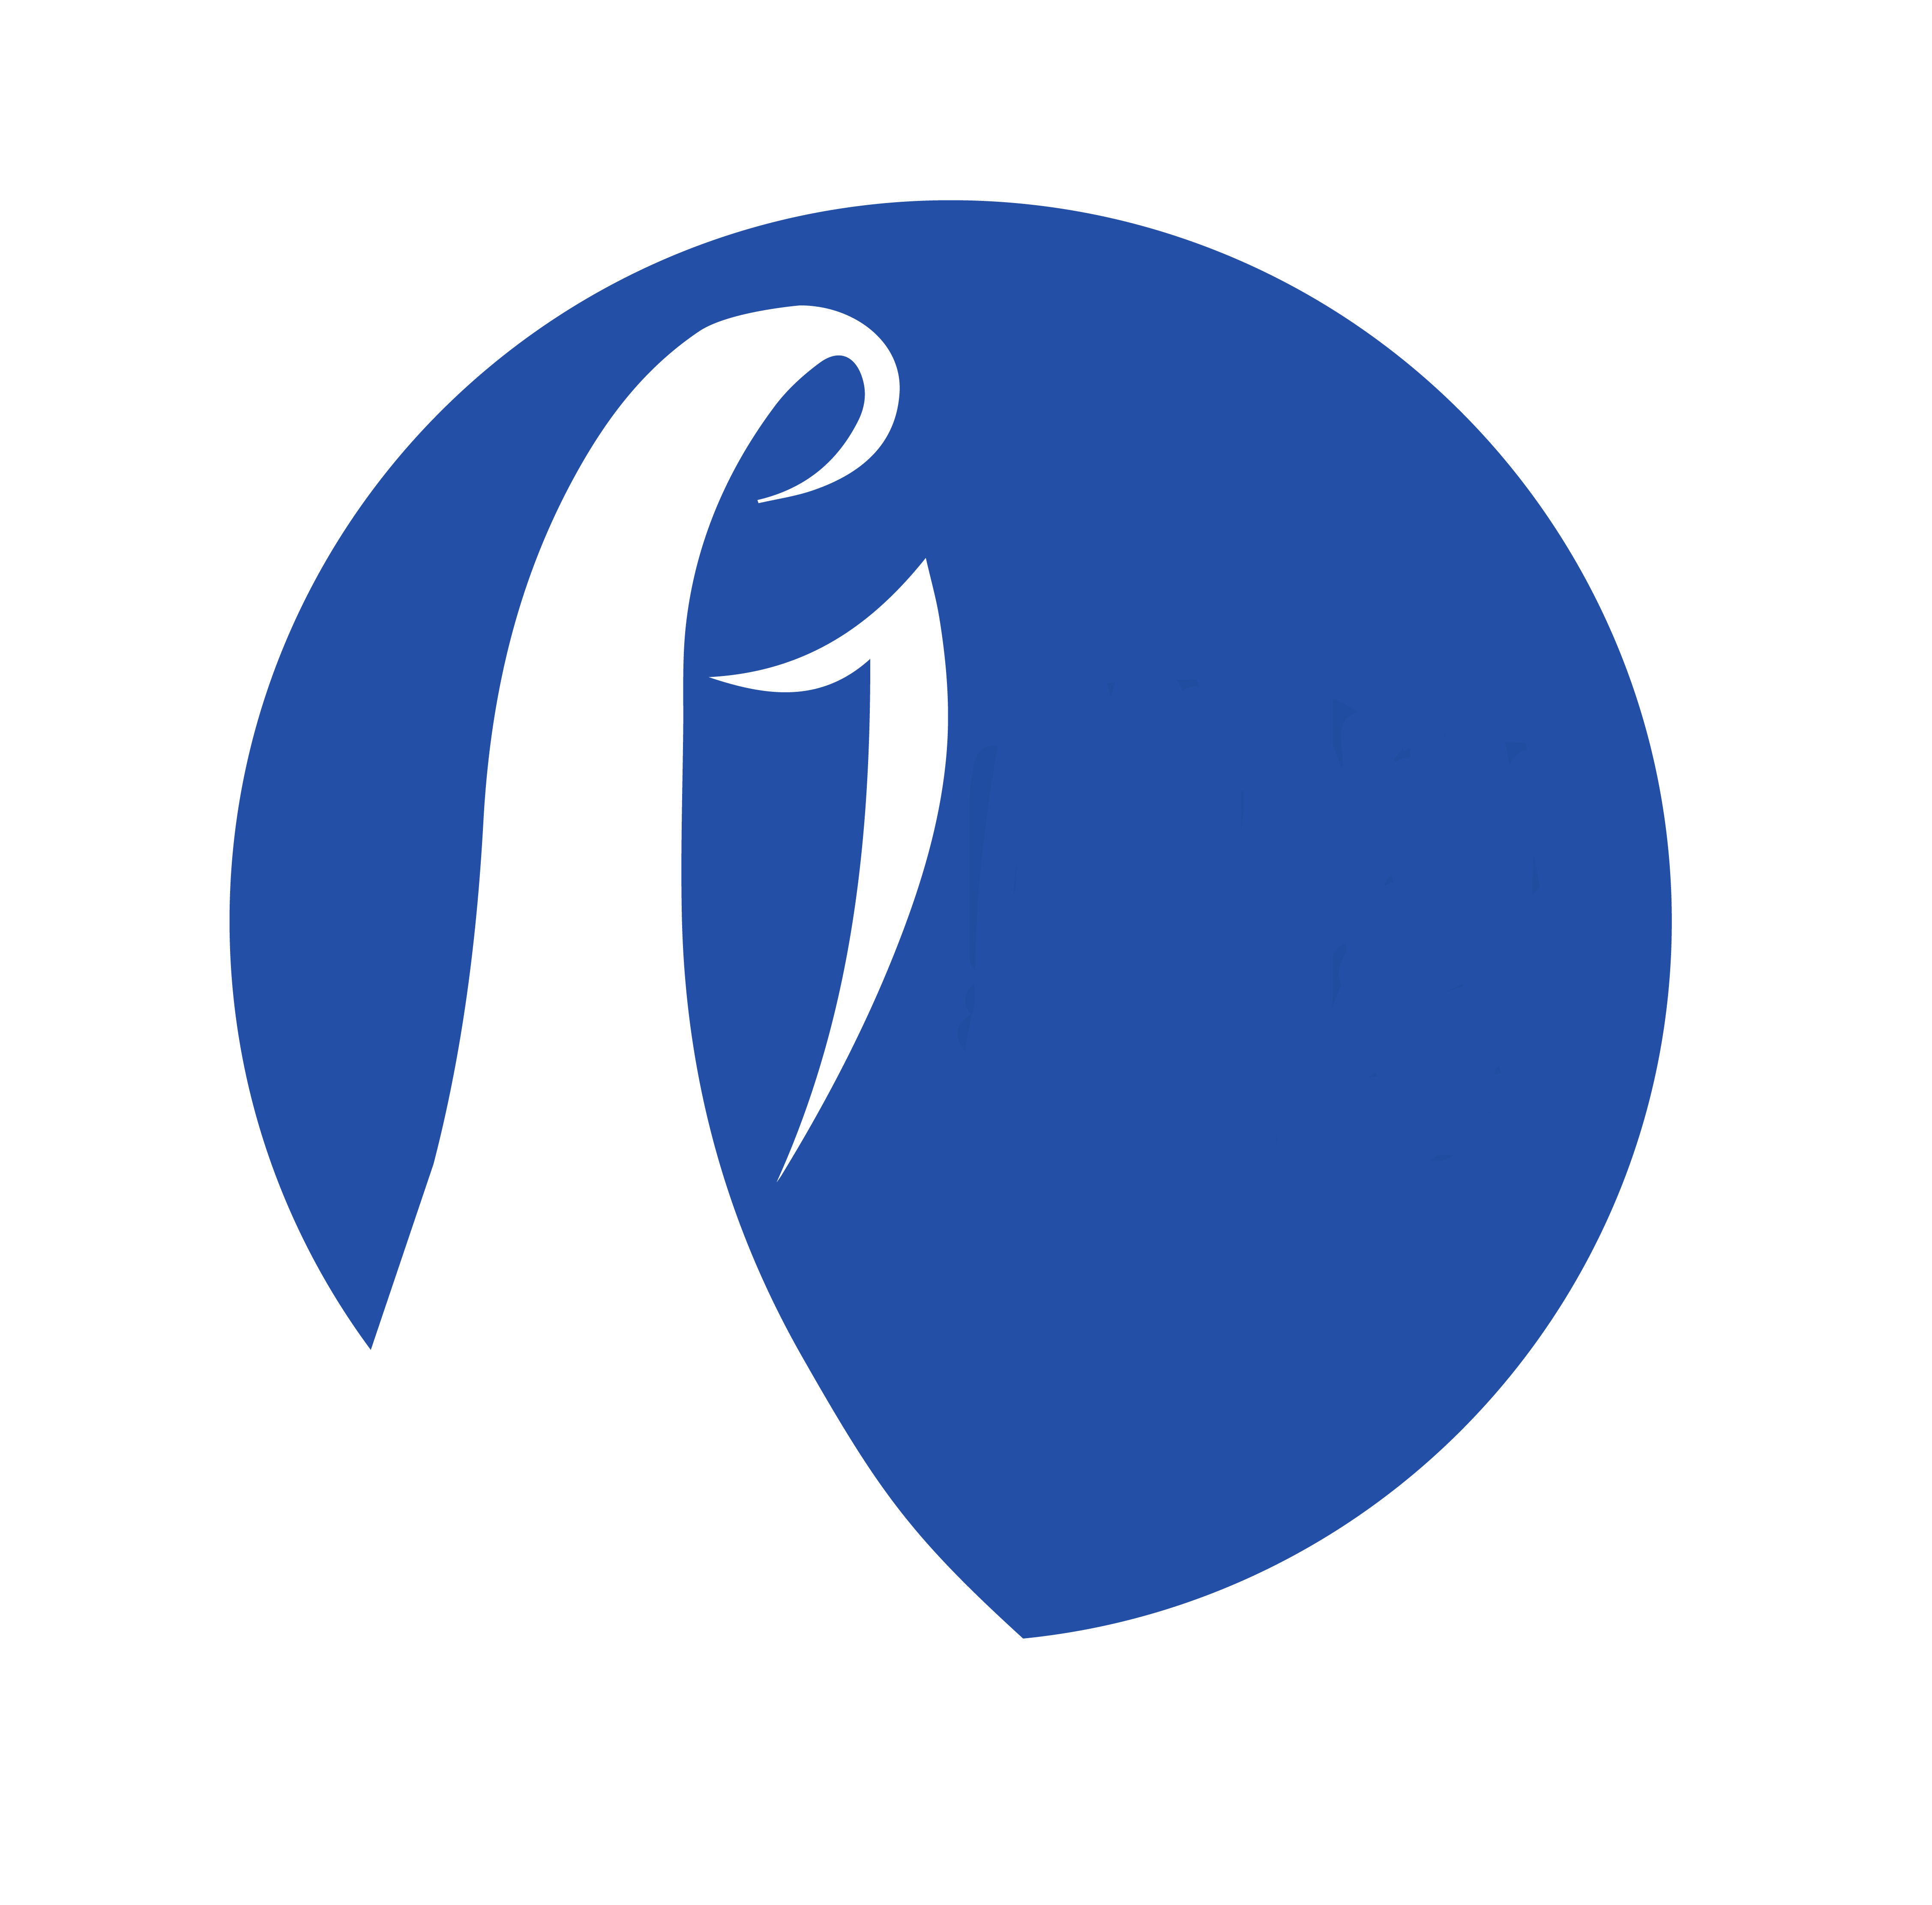 Our Lady of Lourdes Church and School logo